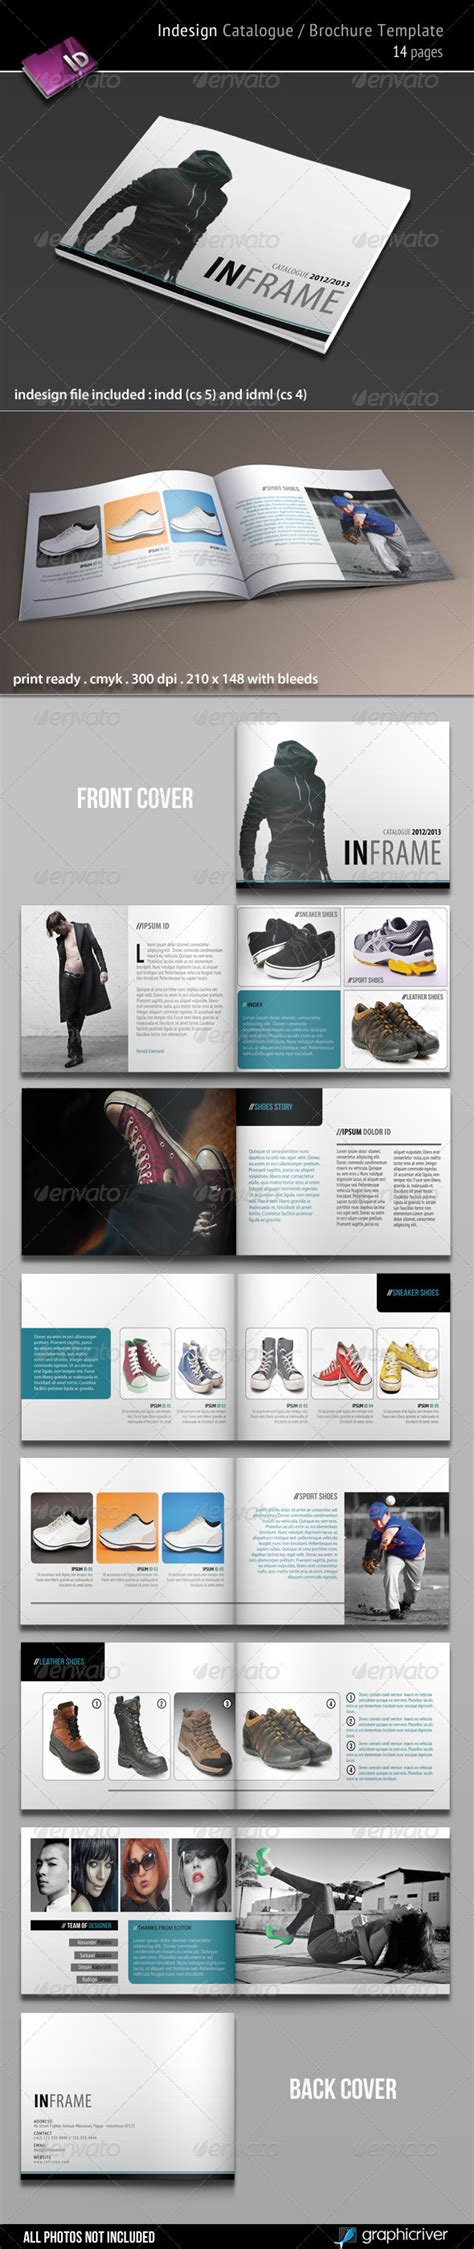 Indesign Catalogue Brochure Template By Kartodarim Graphicriver Indesign Catalog Templates